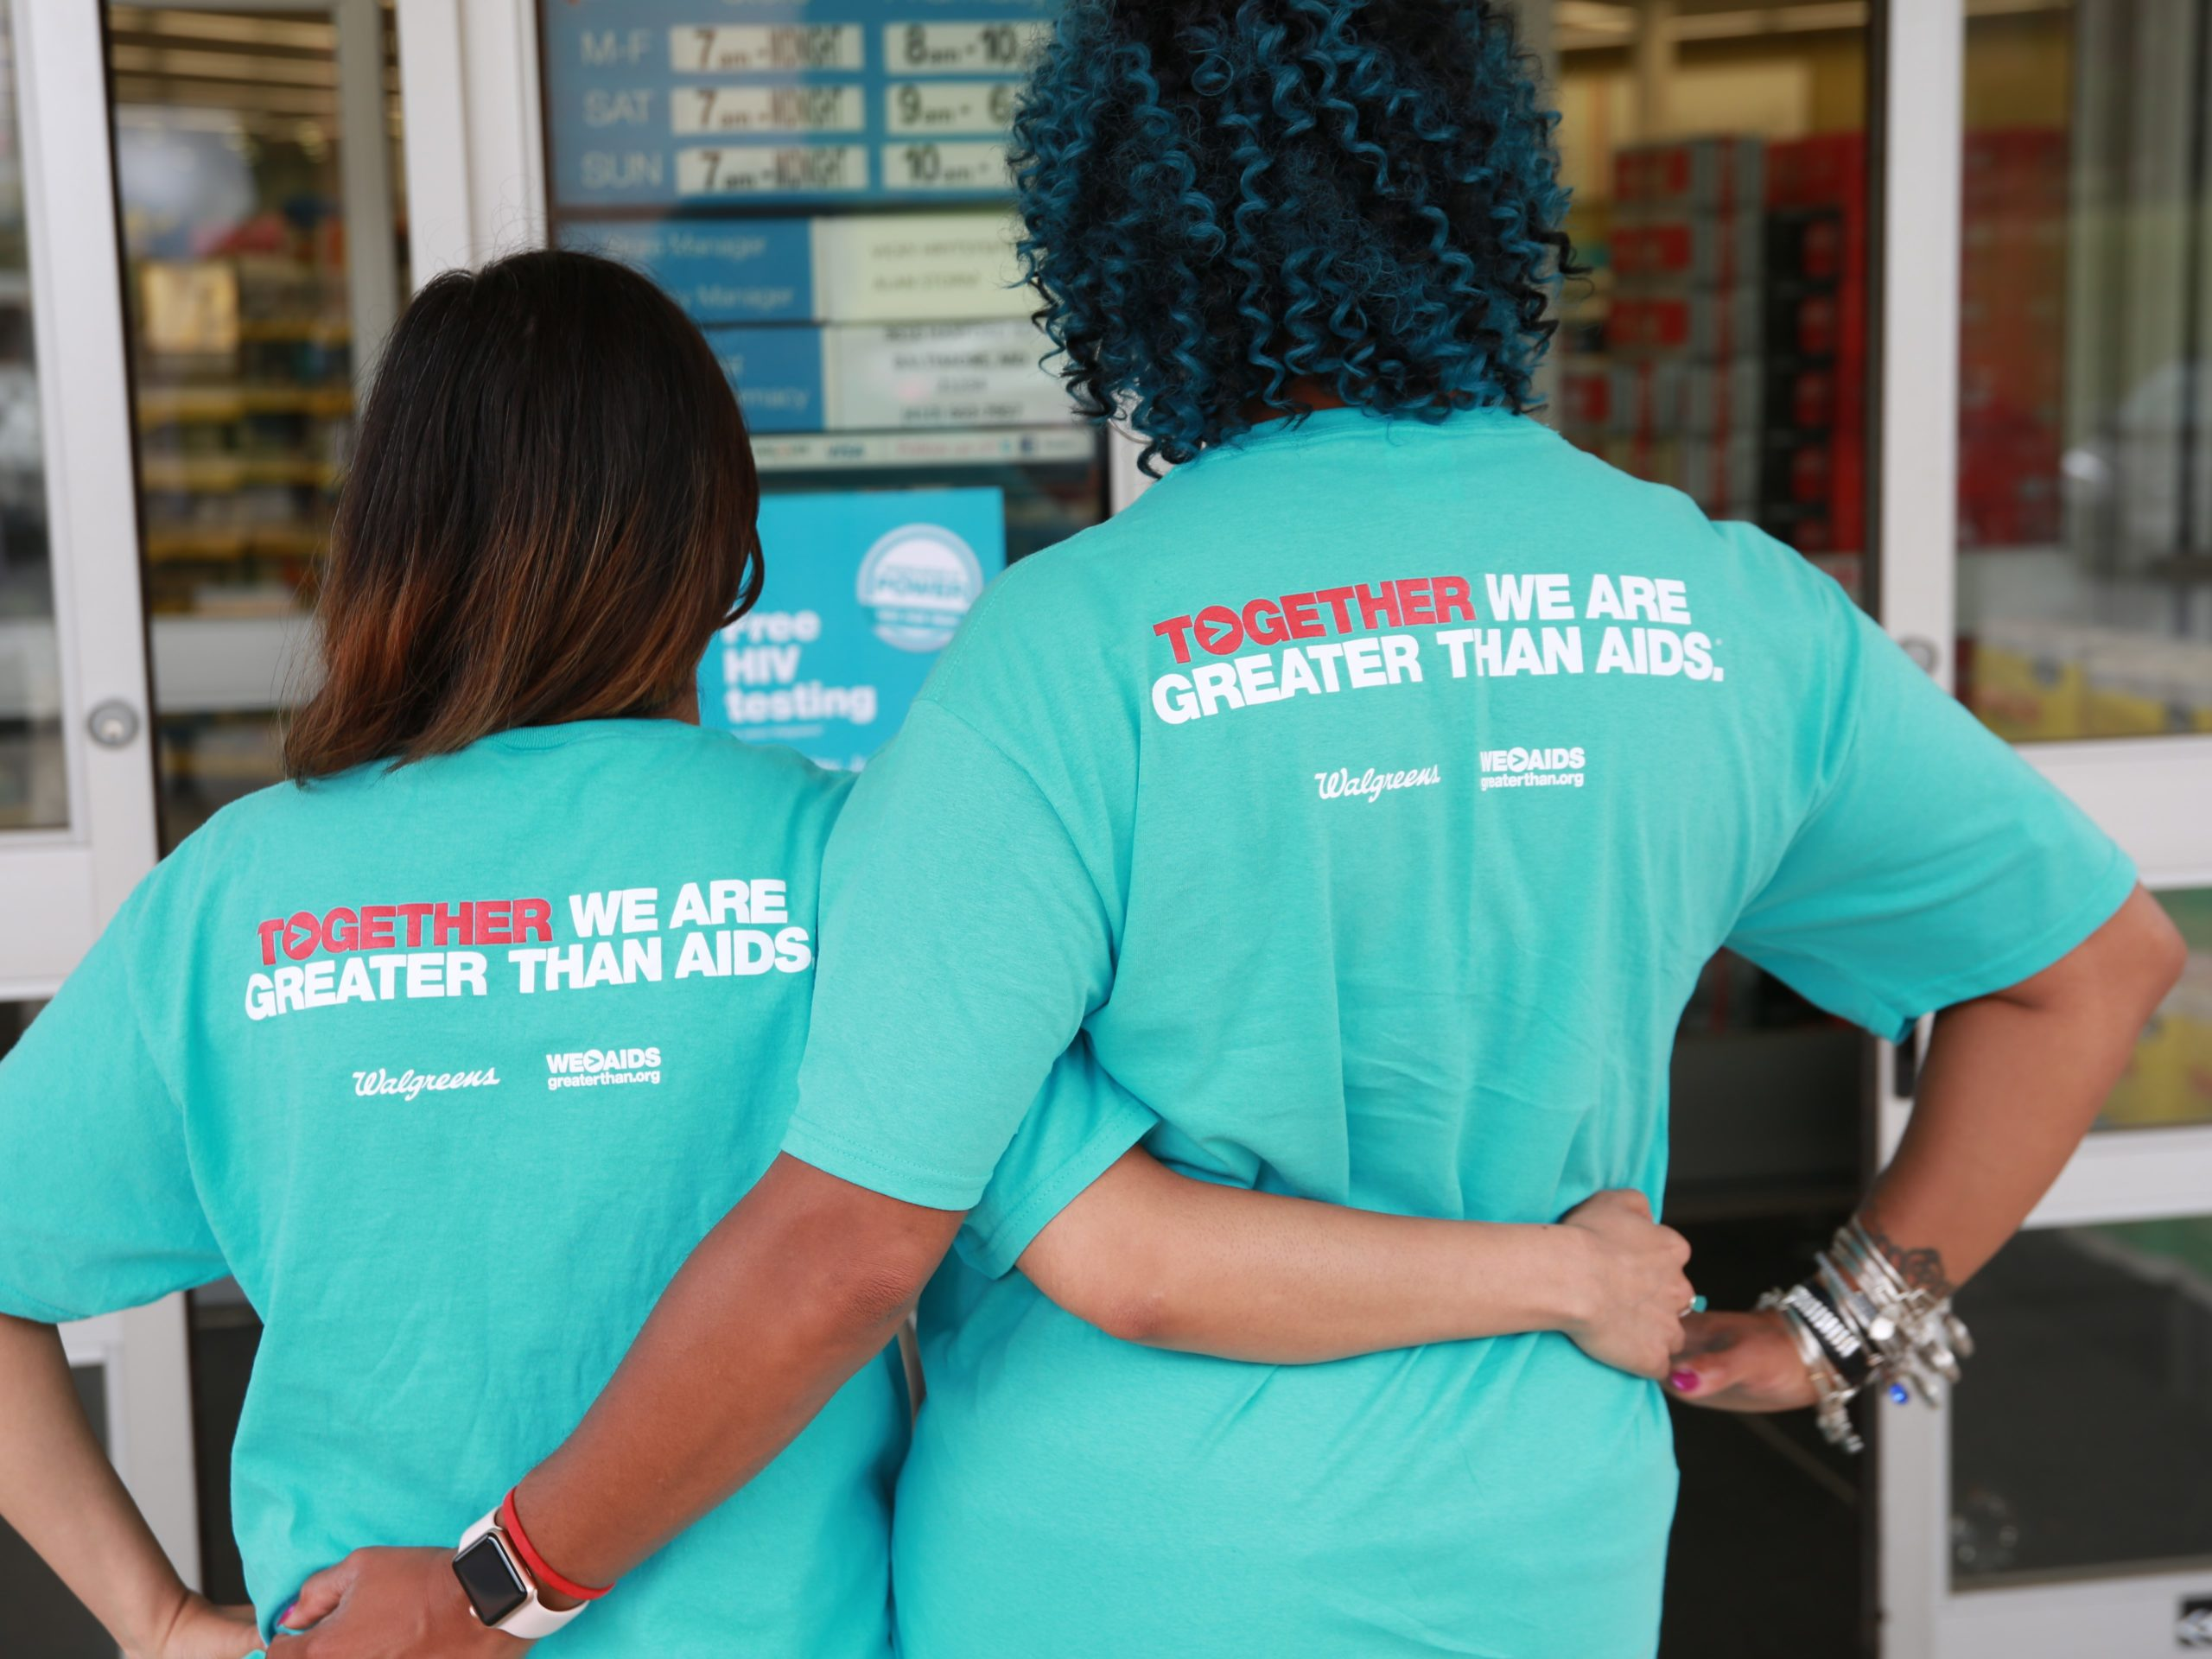 Two women in Greater Than AIDS shirts